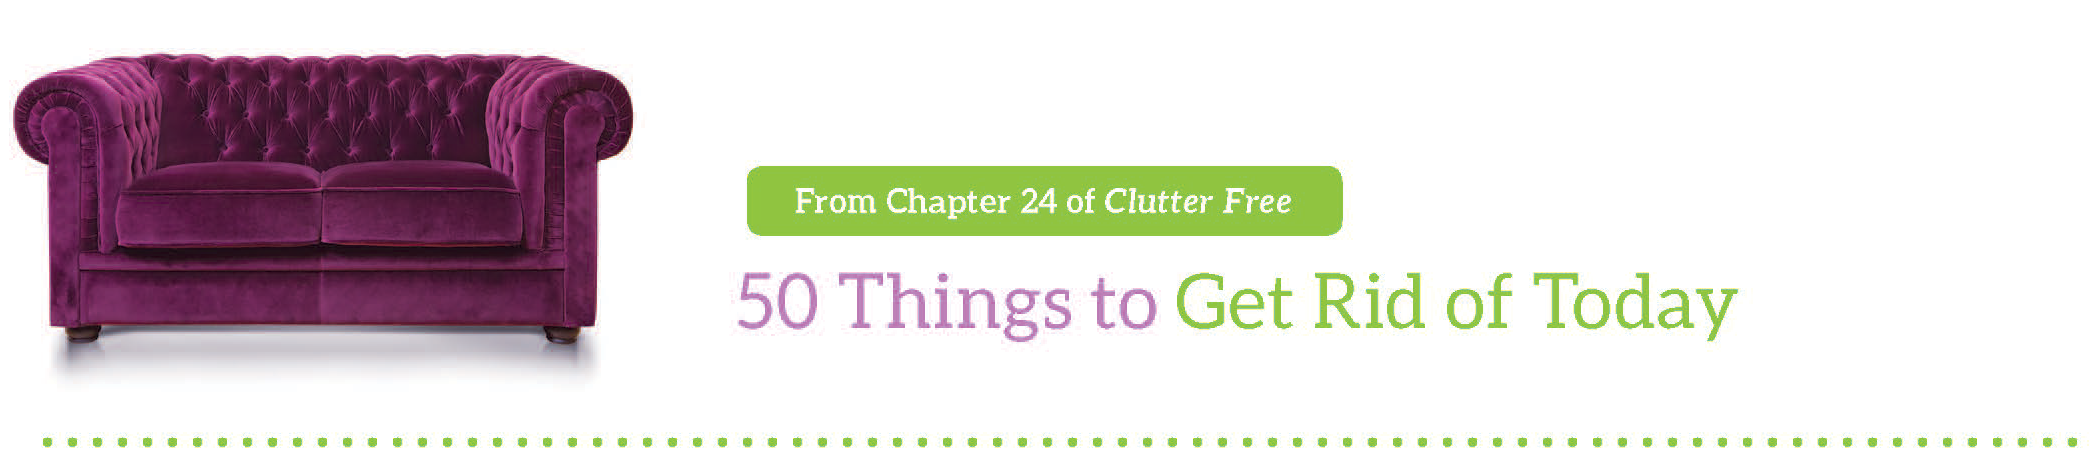 Focus kathi lipp for Ways to get rid of clutter